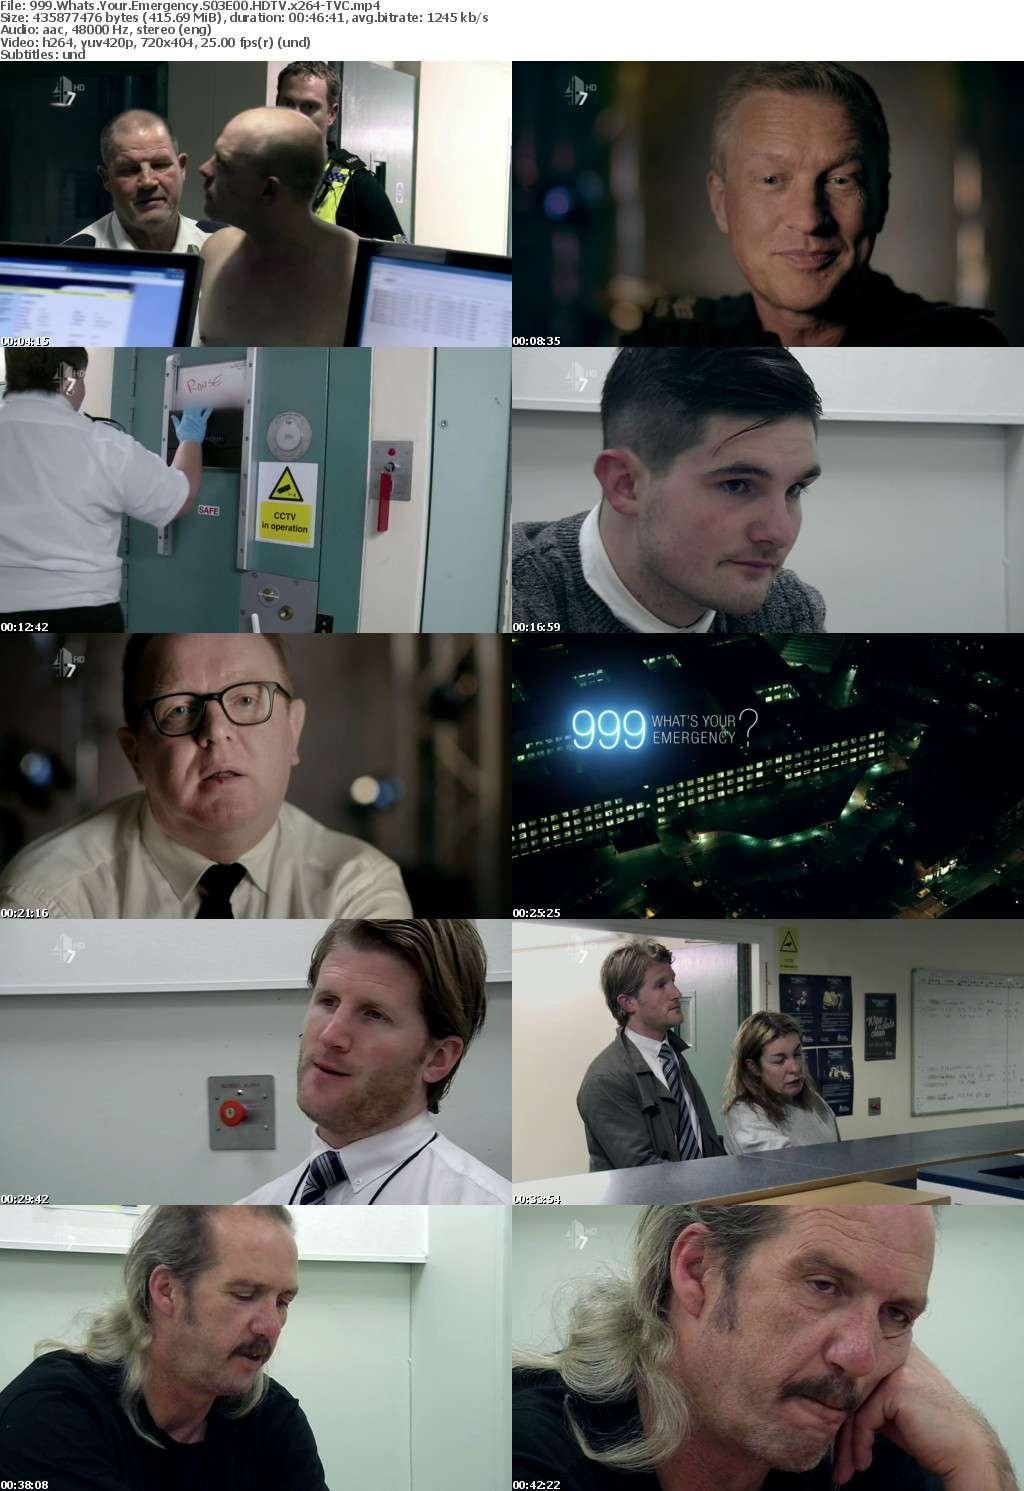 999 Whats Your Emergency S03E00 HDTV x264-TVC